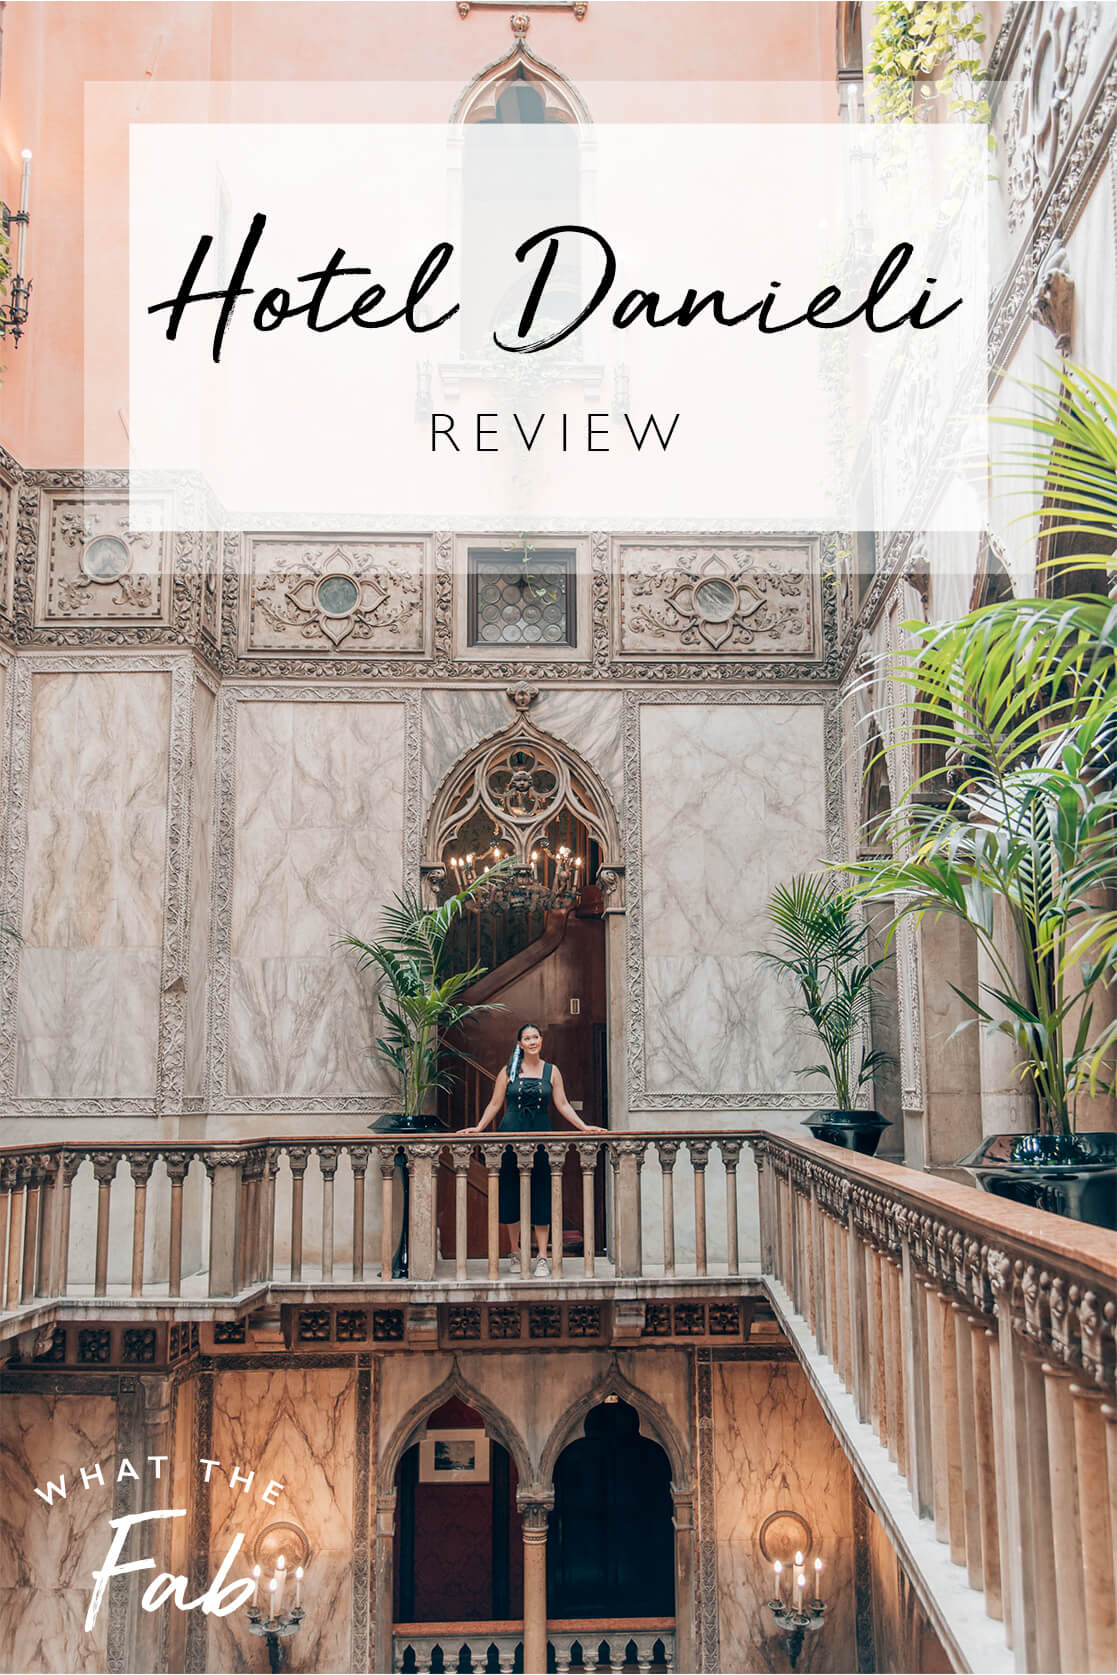 Hotel Danieli Venezia Luxurious Hotel Review 2020